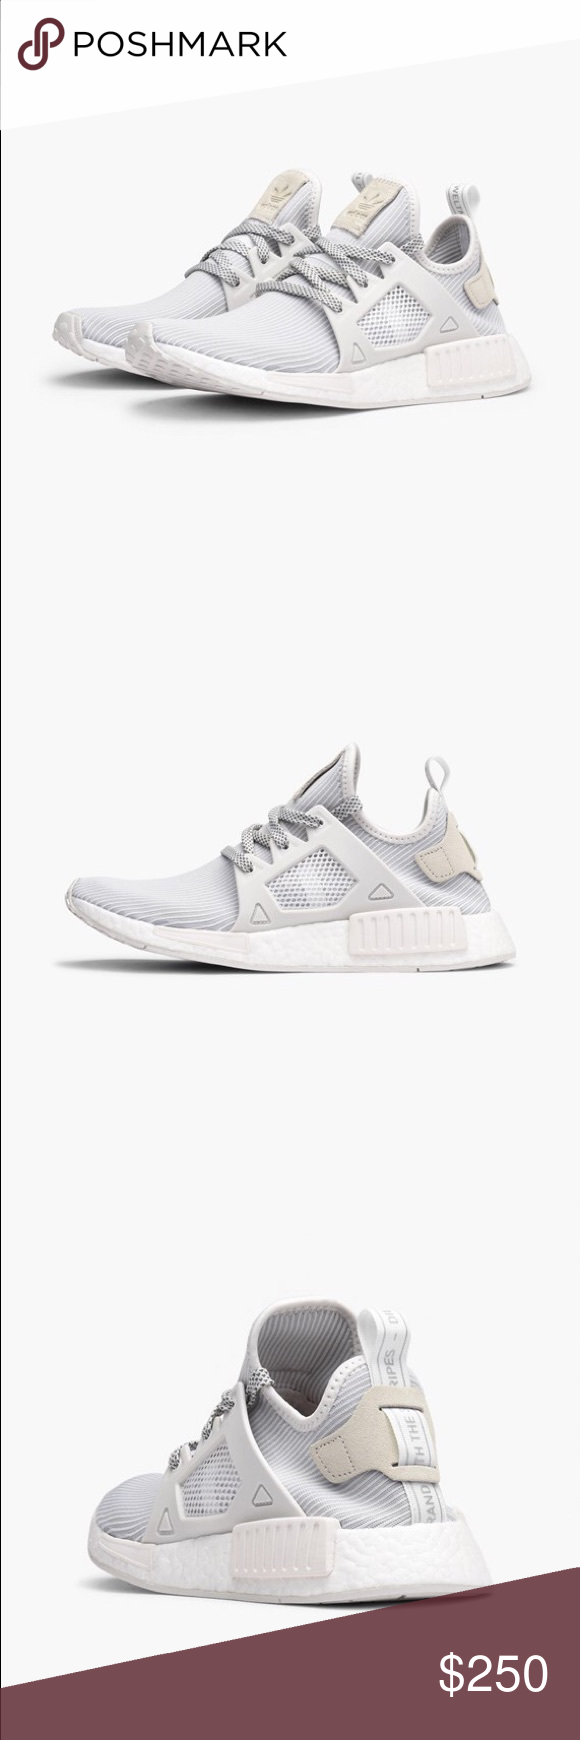 Adidas NMD XR1 Primeknit Vintage White Size us6, 6.5 womens Adidas Shoes  Athletic Shoes